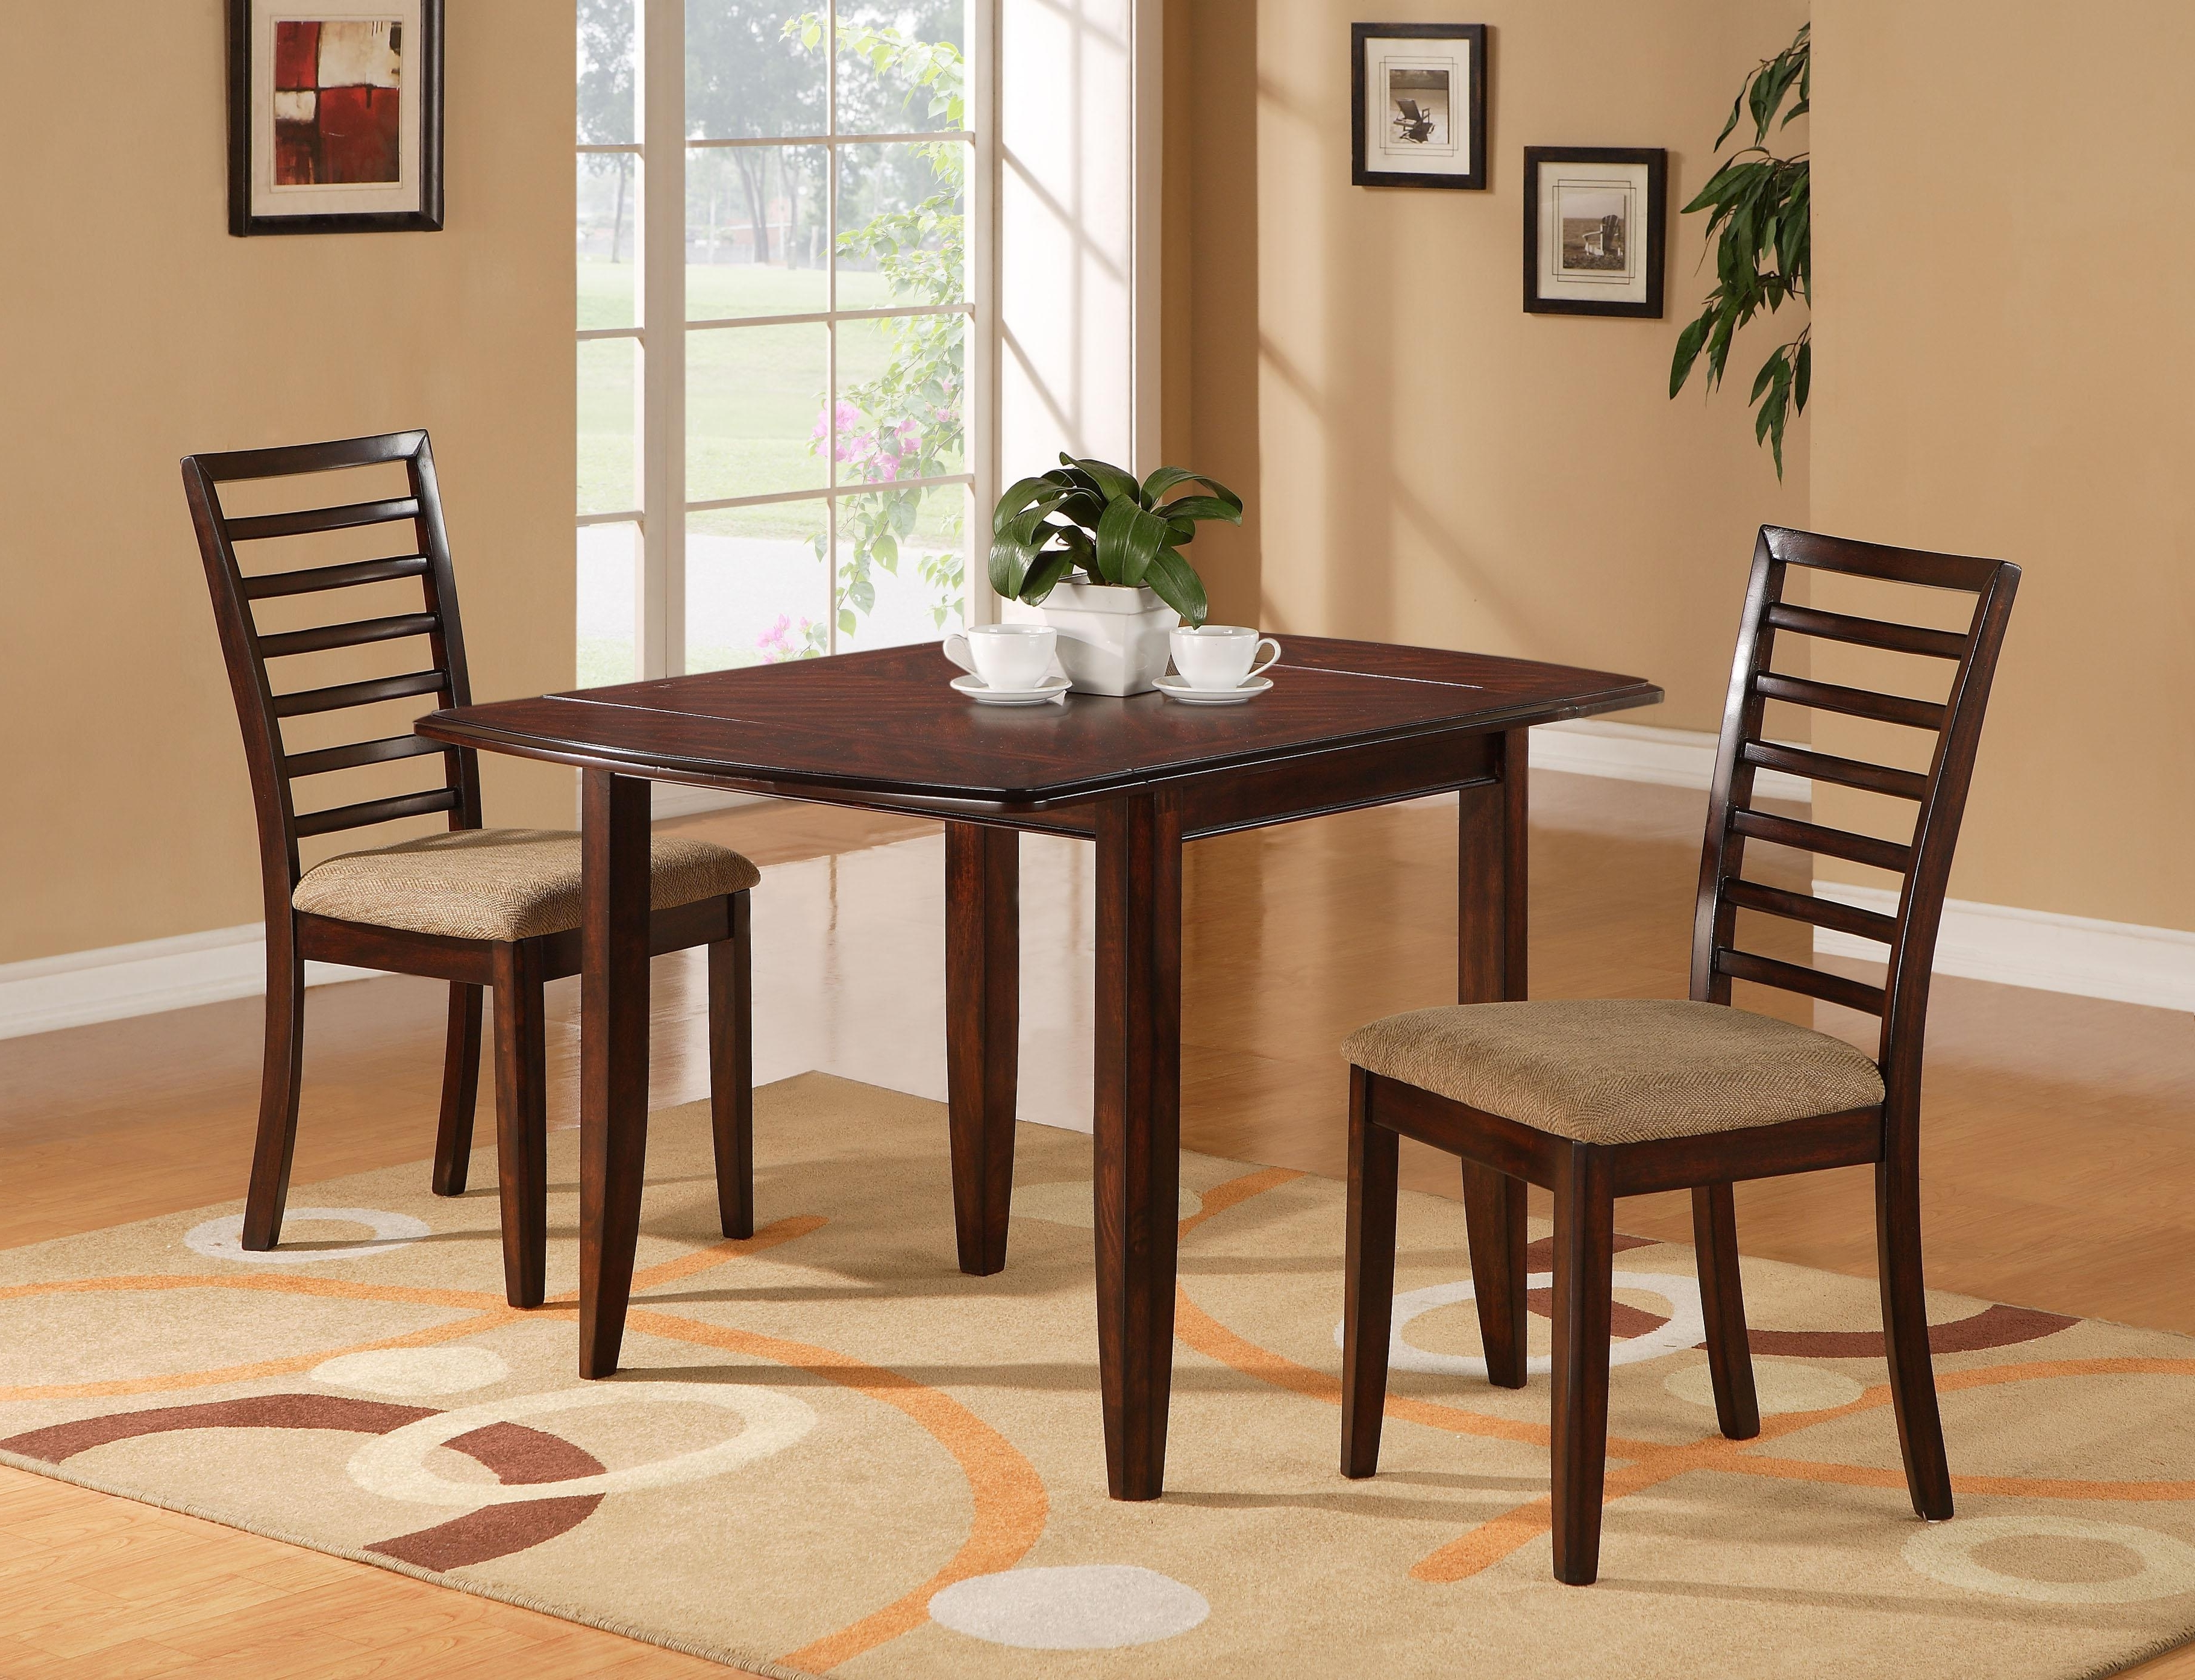 Spokane, Kennewick, Tri Cities, Wenatchee Within Cheap Dining Tables And Chairs (View 20 of 25)